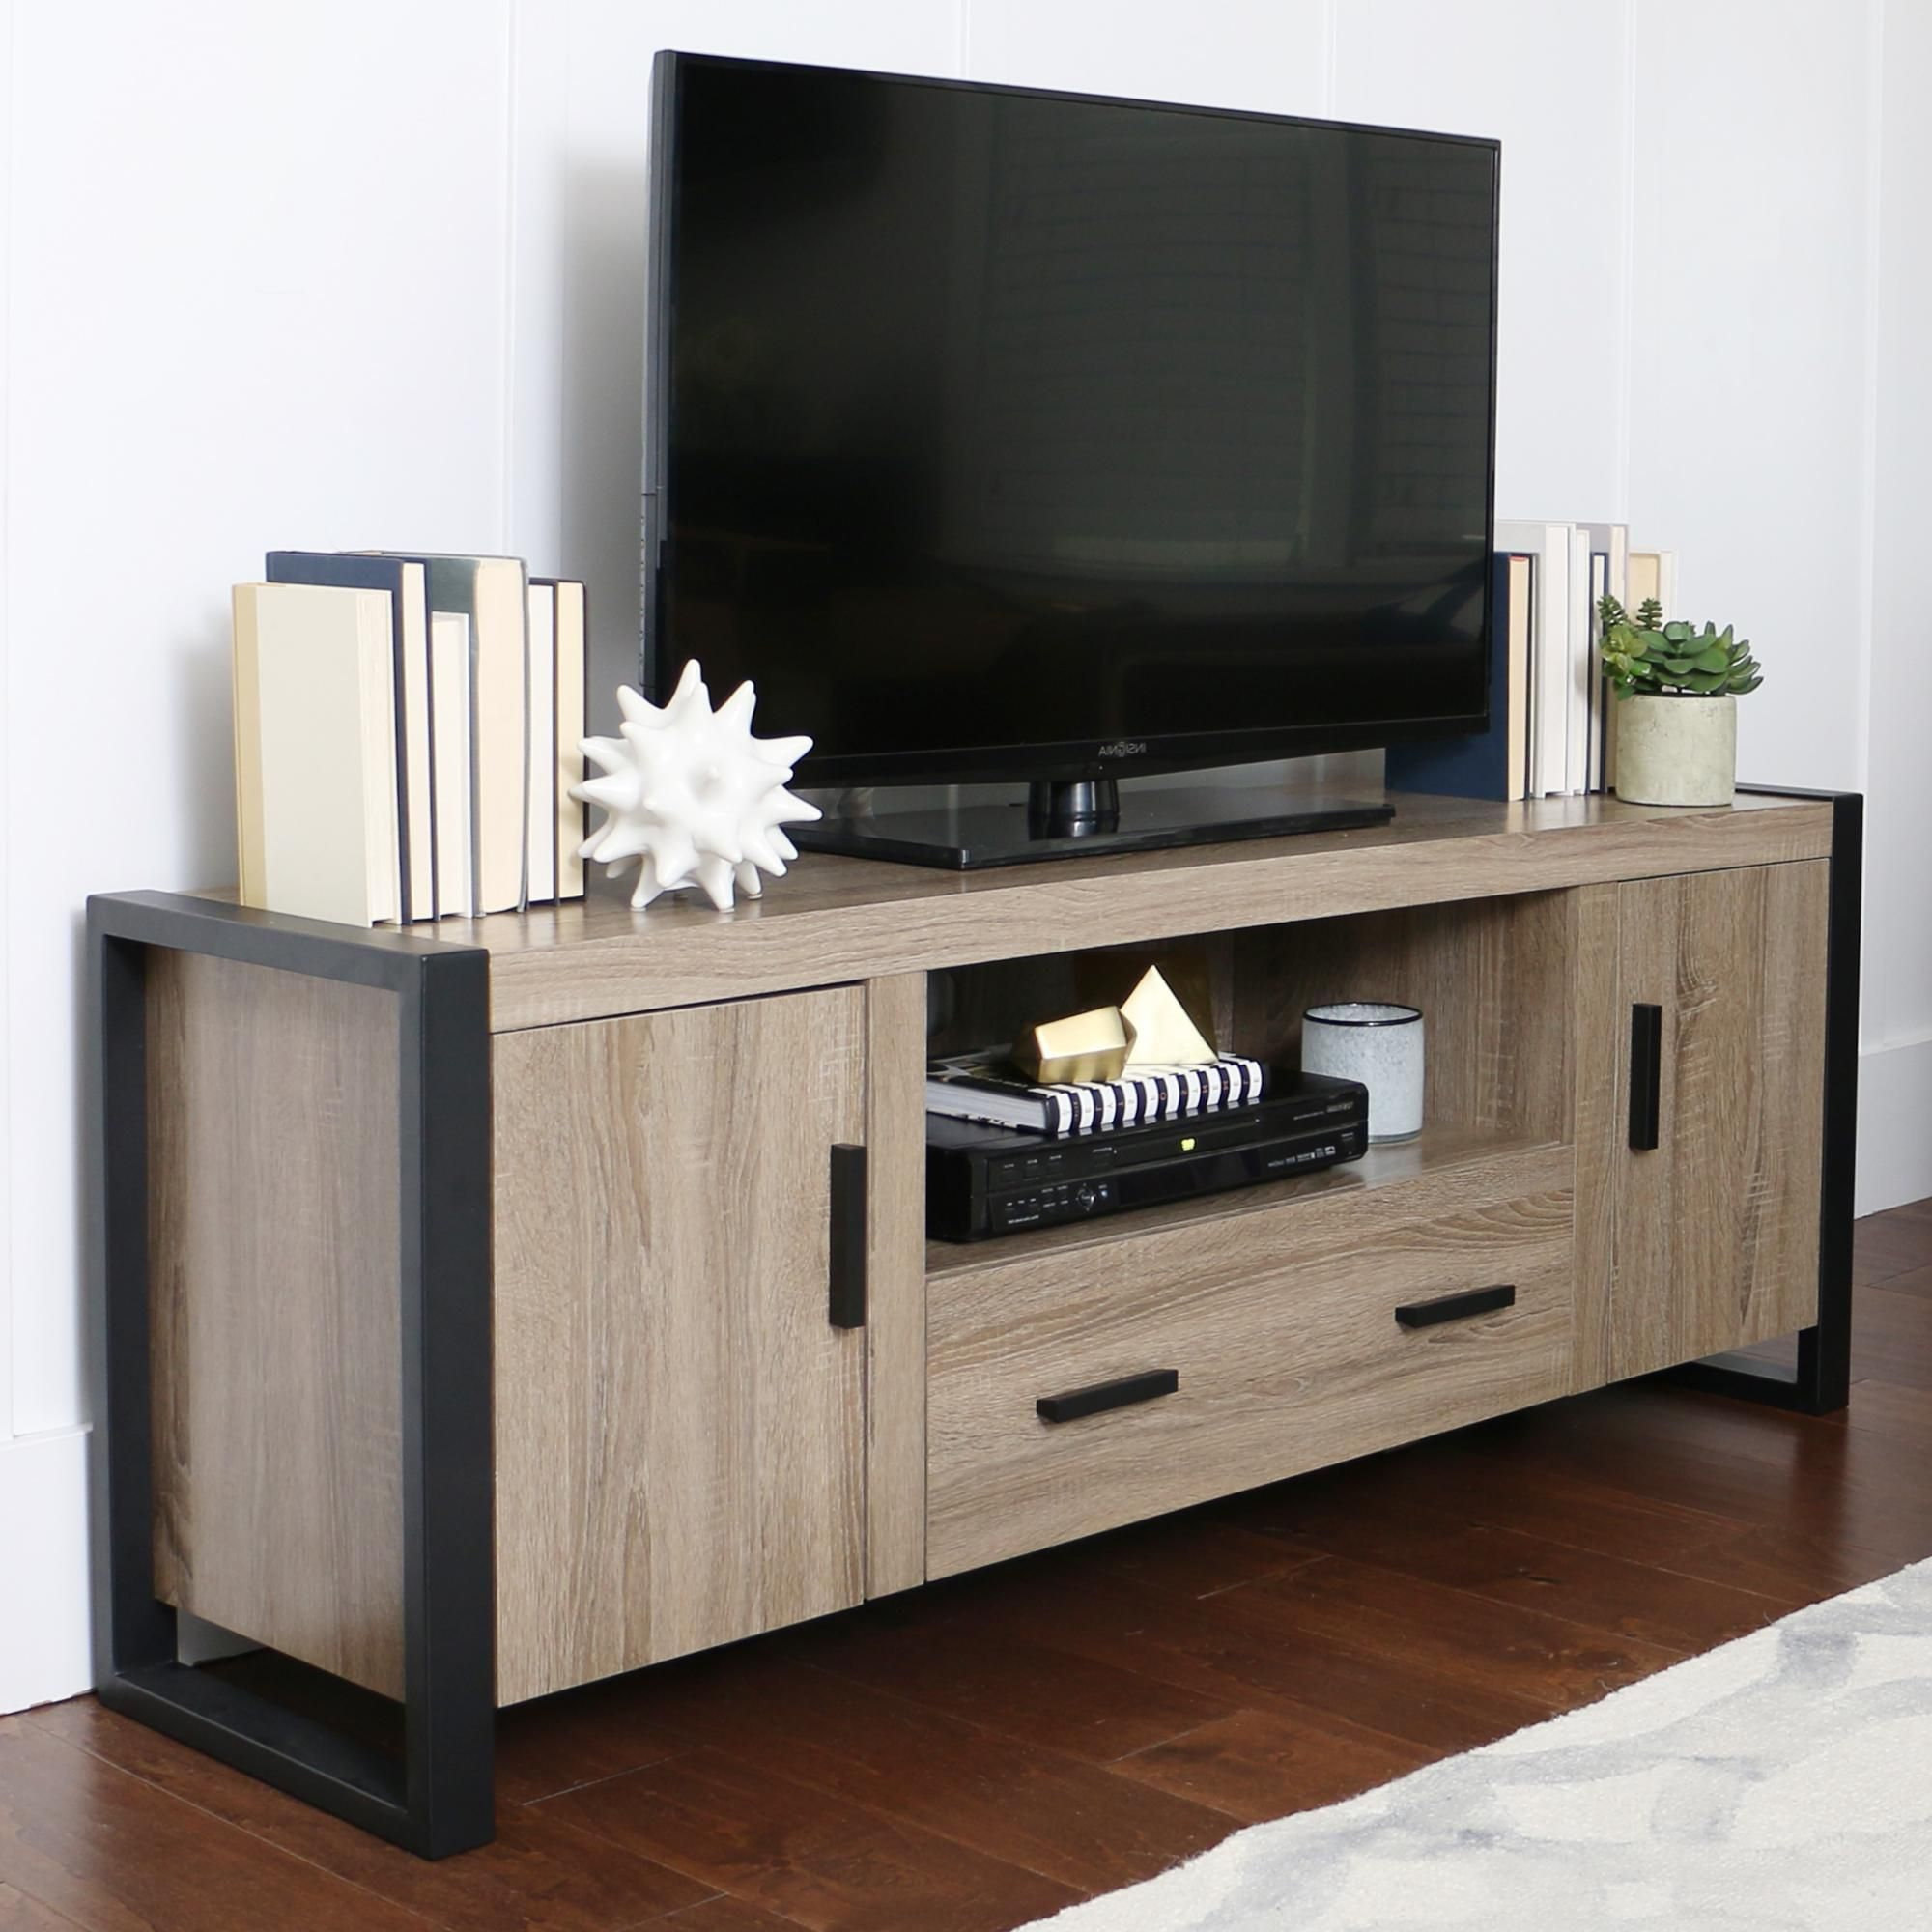 Amazon Com We Furniture 70 Quot Industrial Wood Tv Stand Console Driftwood Kitchen Amp Dining Tv Stand Wood Saracina Home Metal Tv Stand